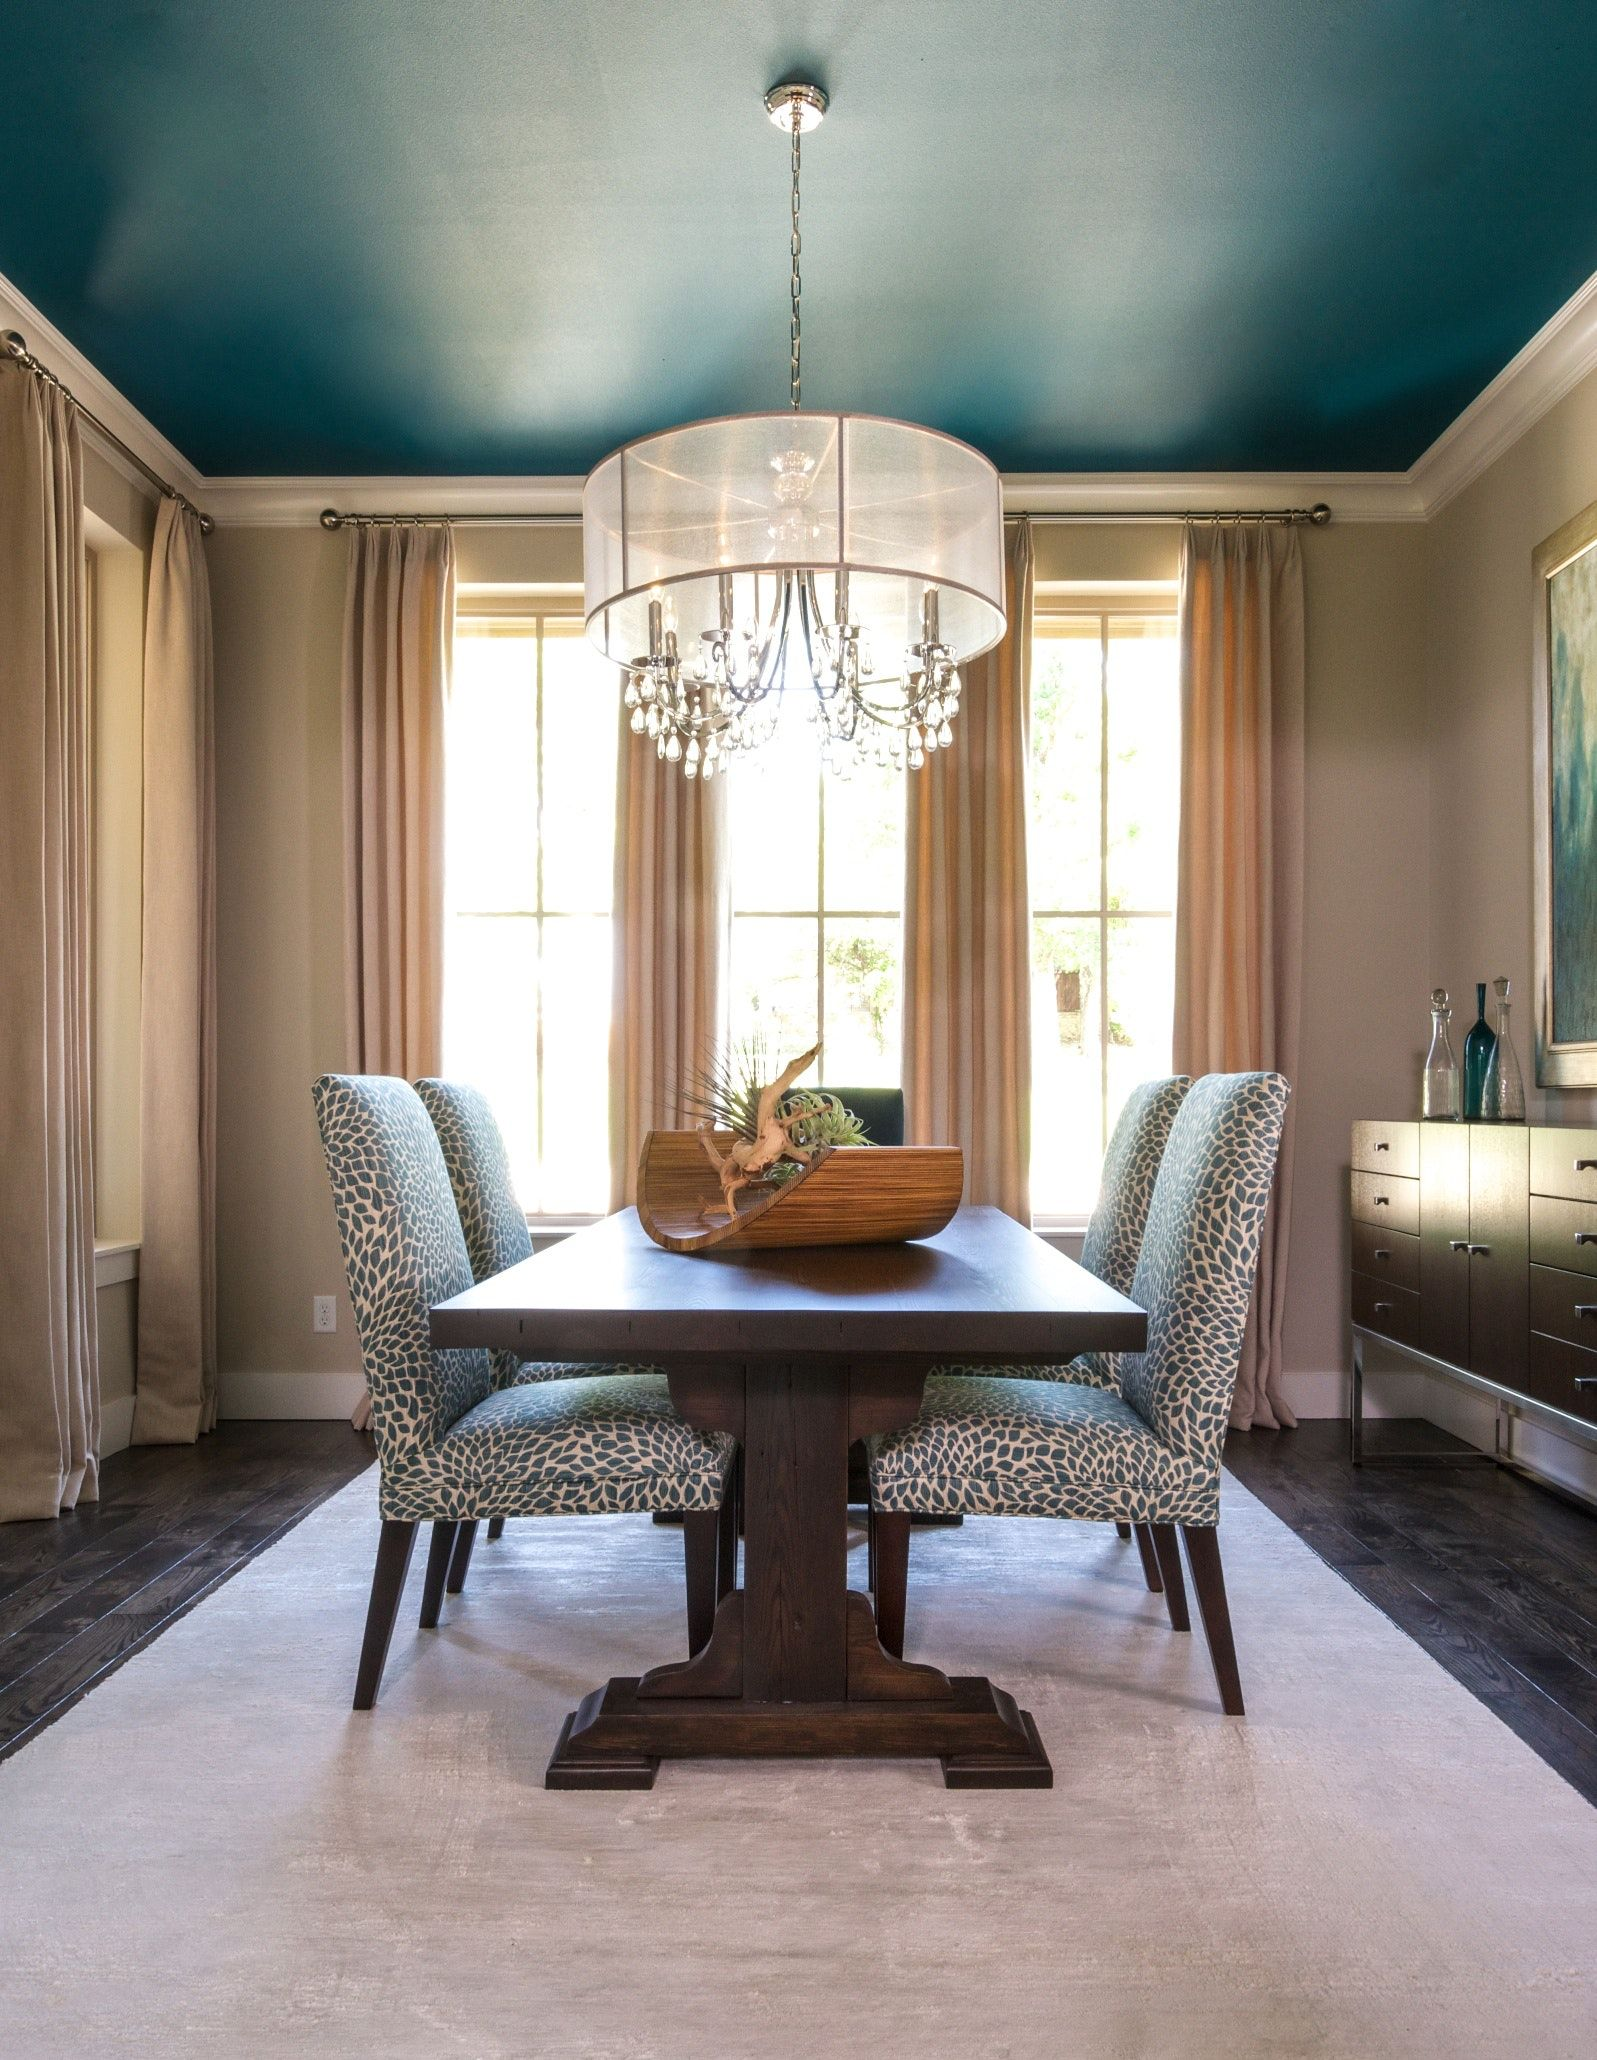 Dallas TX Dining Room Taupe walls contrast nicely with the teal